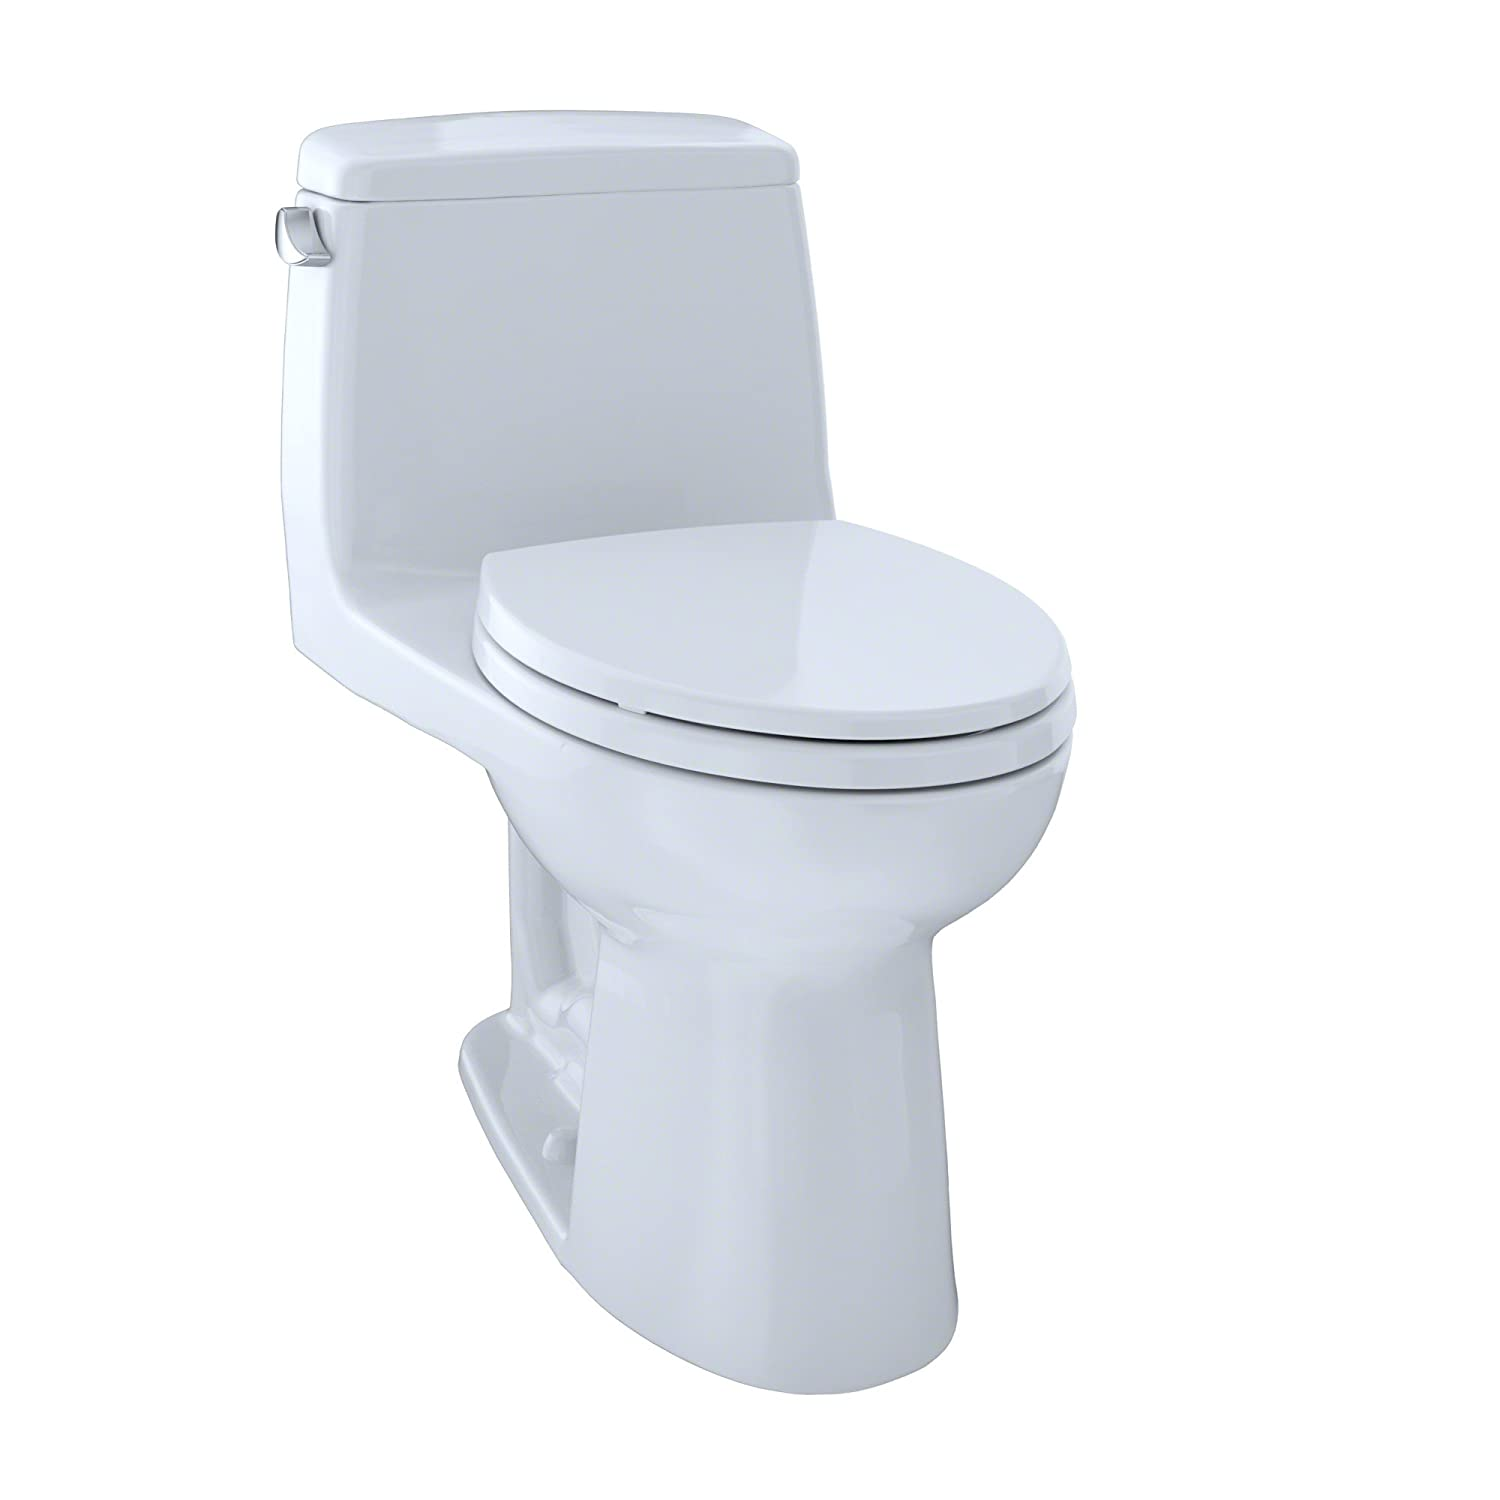 Top 5 Best One Piece Toilets Reviews in 2020 1